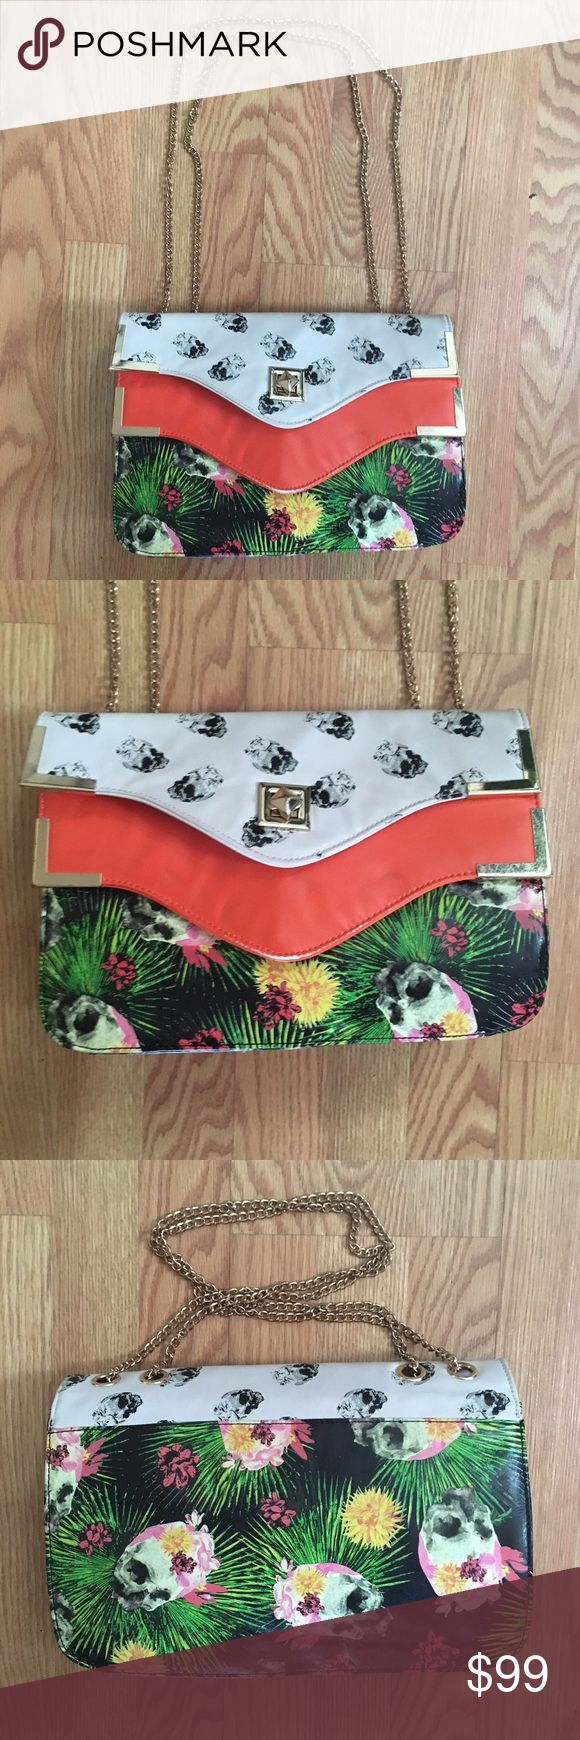 IRON FIST Tropical Skull Summer Shoulder Bag IRON FIST Tropical Skull Summer Shoulder Bag, used a few times, slight signs of wear on buckle and edges. EUC Iron Fist Bags Shoulder Bags